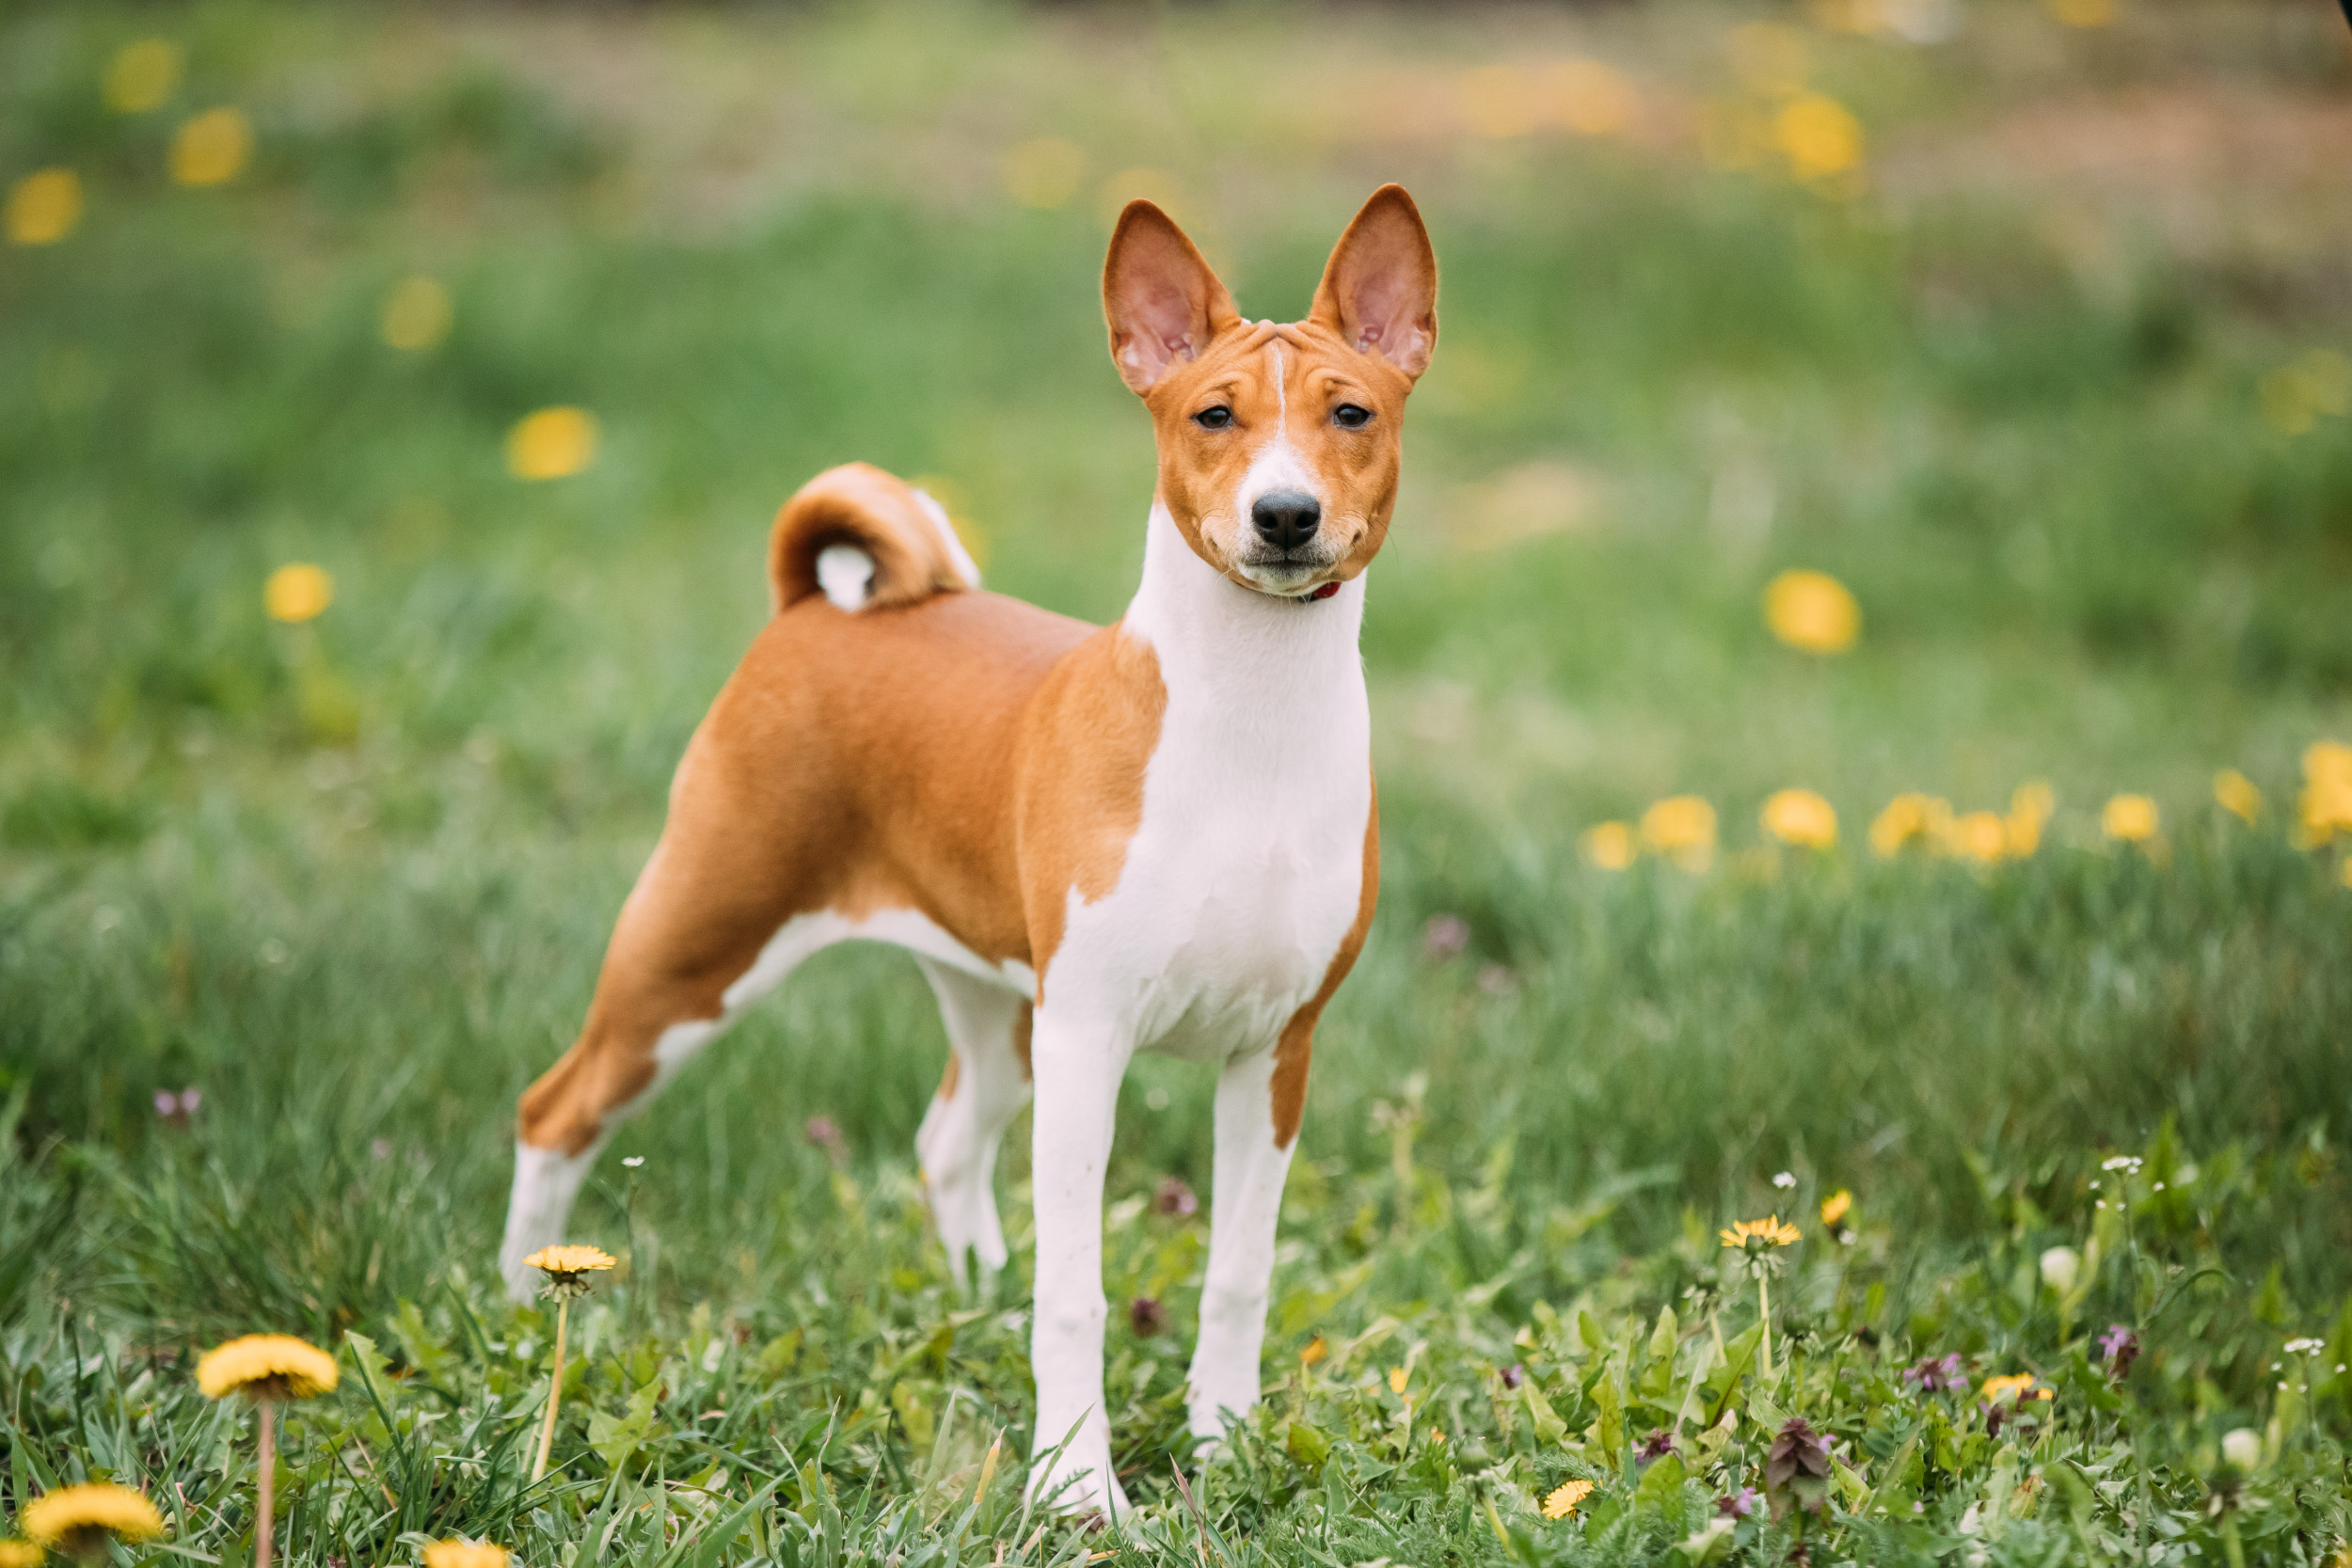 Massachusetts Basenji Dog Missing Since 2016 Returned to Owner 9 Miles Away thumbnail